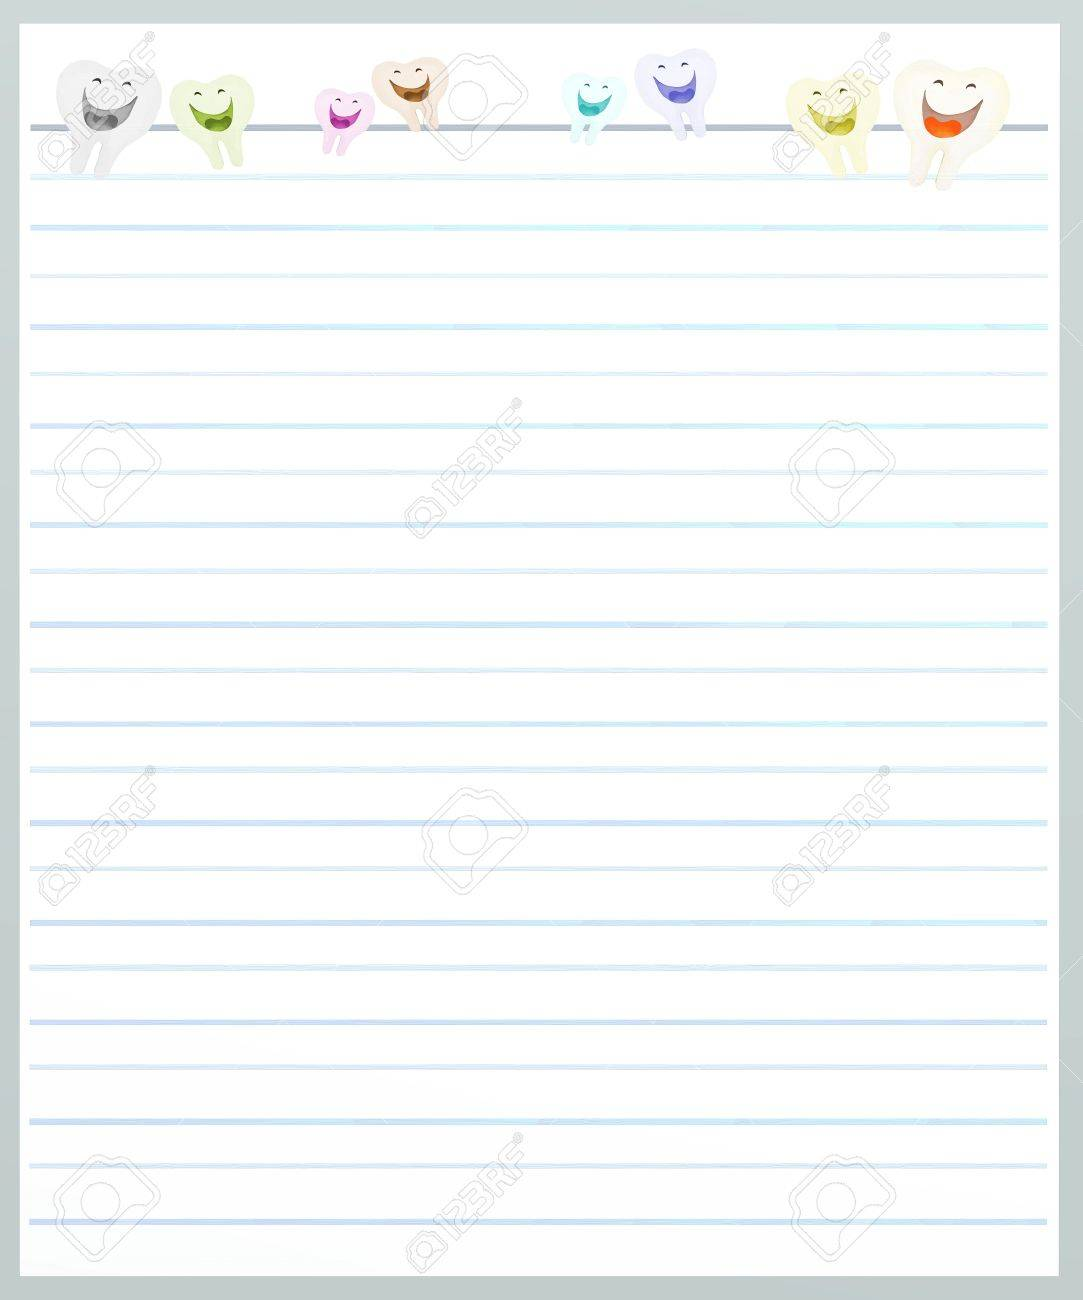 Hand Drawing Of Tooth Cartoon On A Blank Grey Lined Paper Background With  Copy Space For